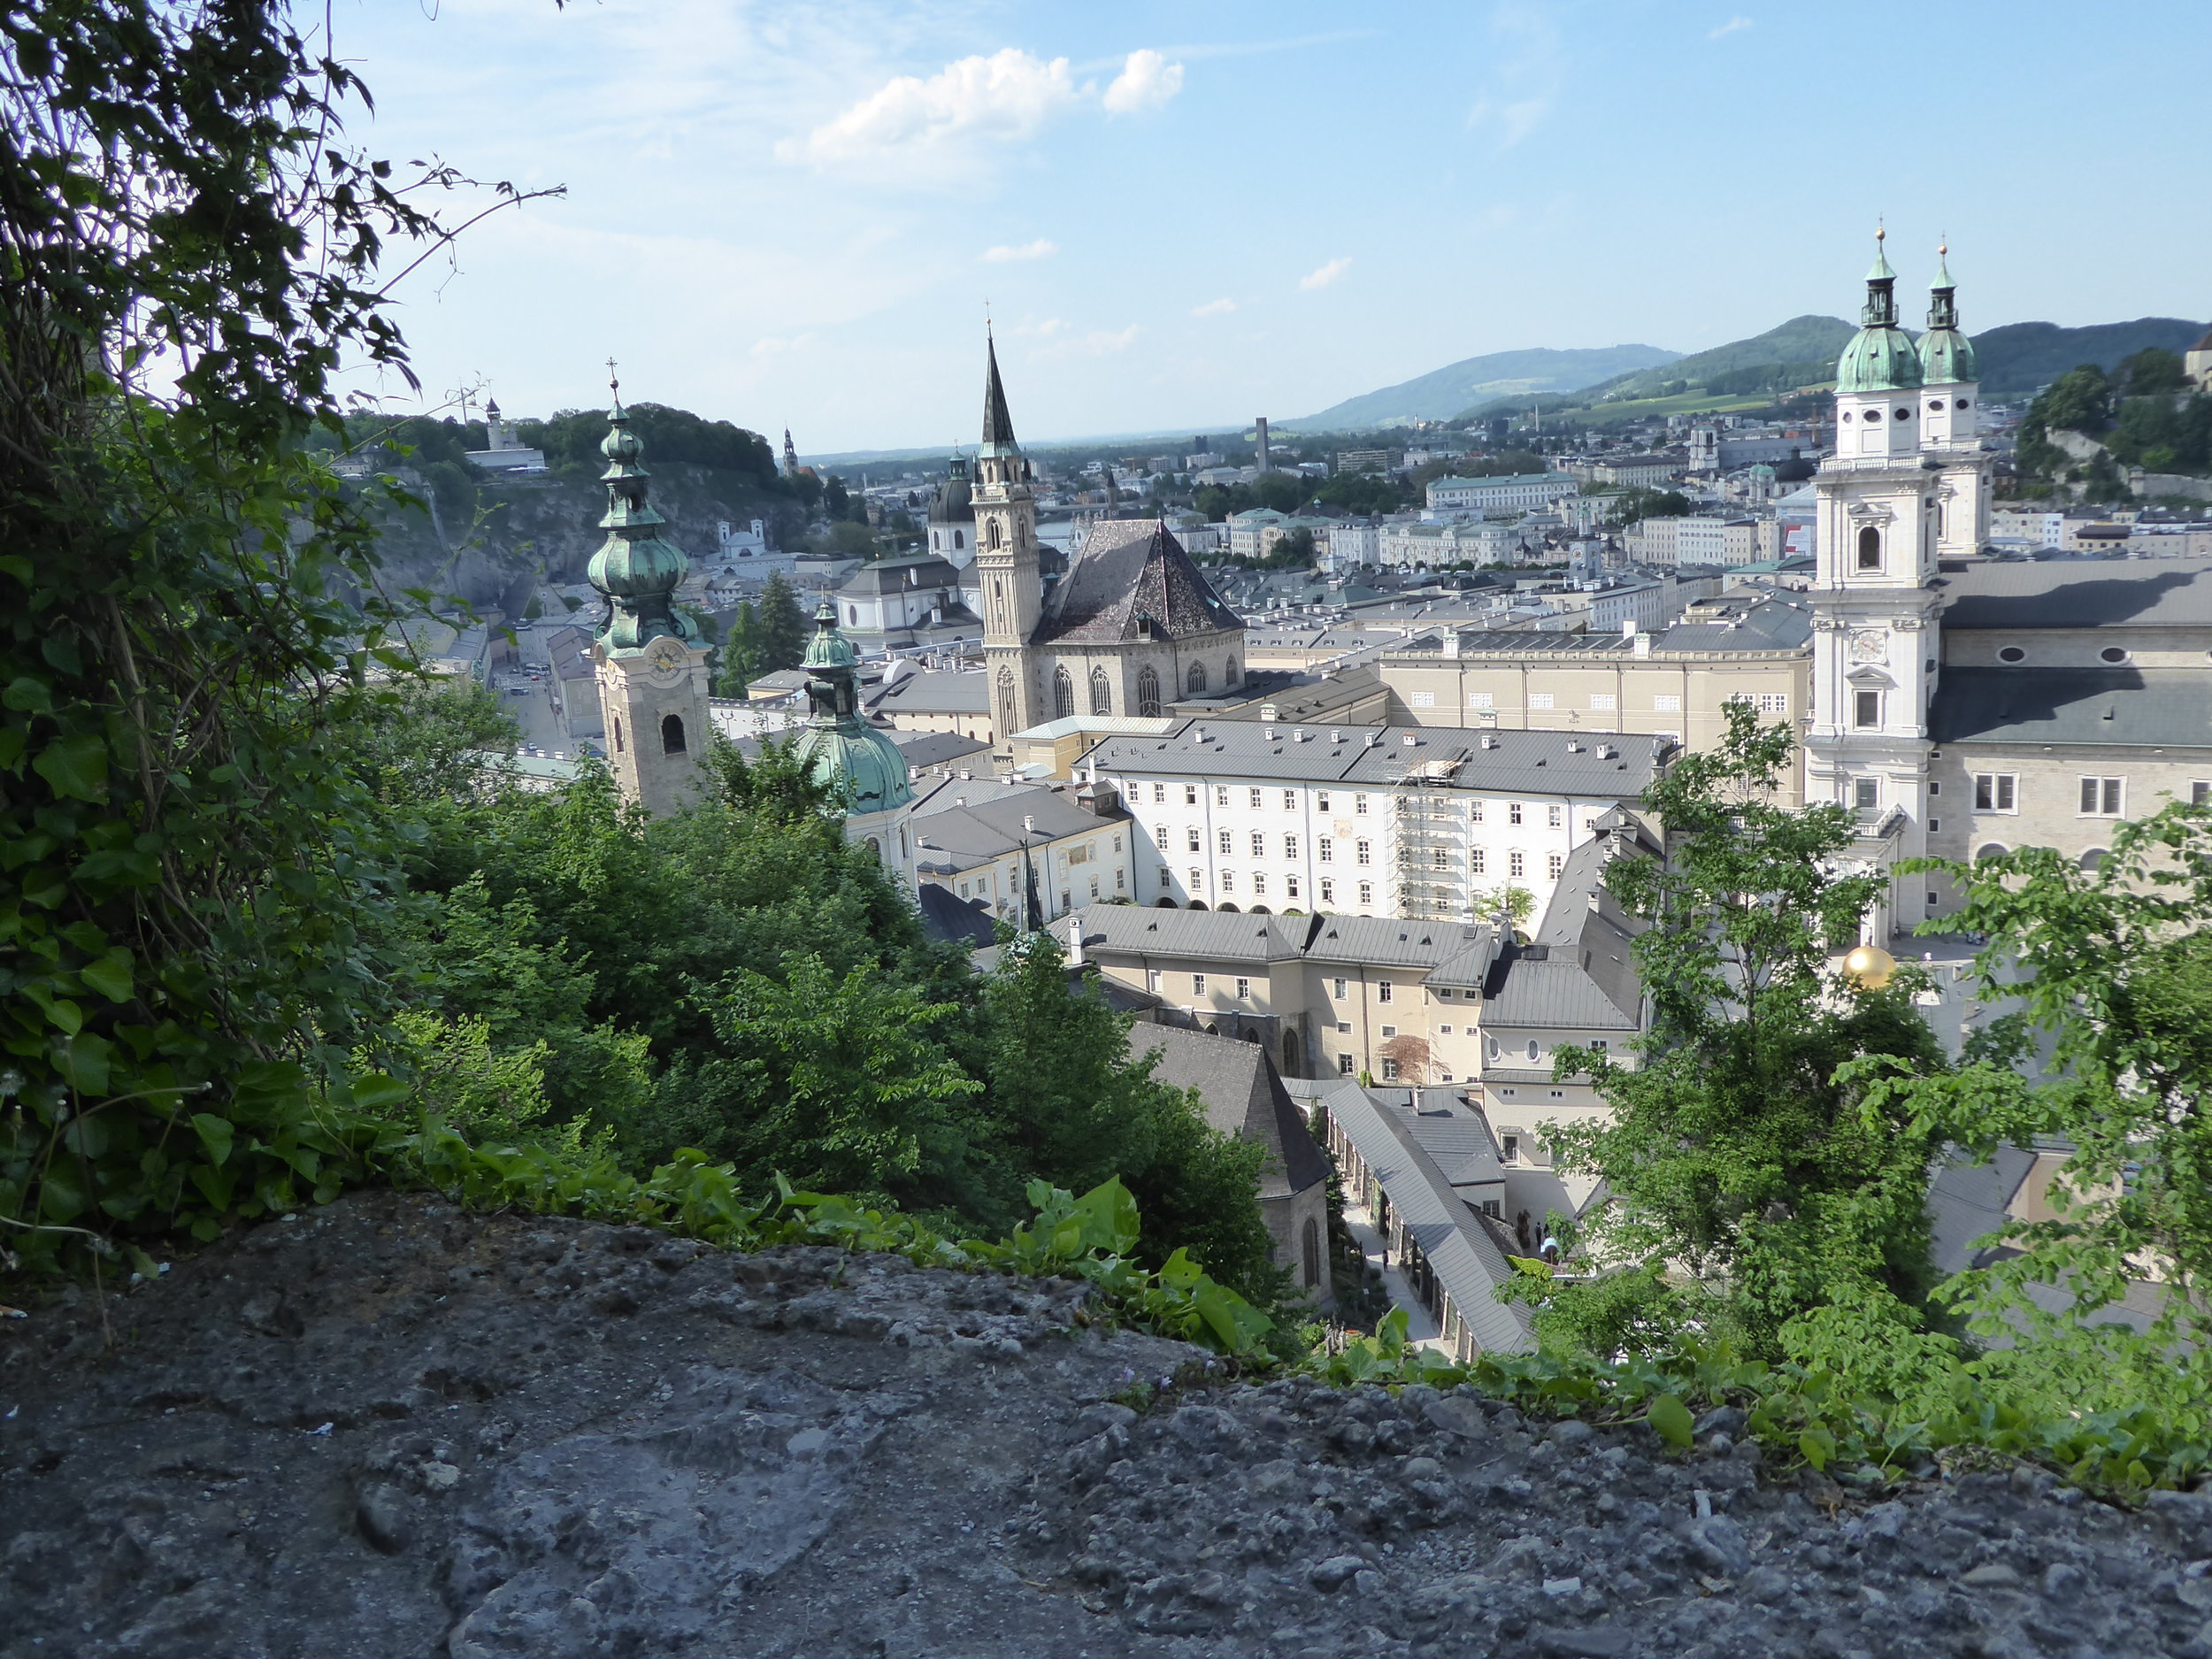 Looking down at Salzburg from above. We